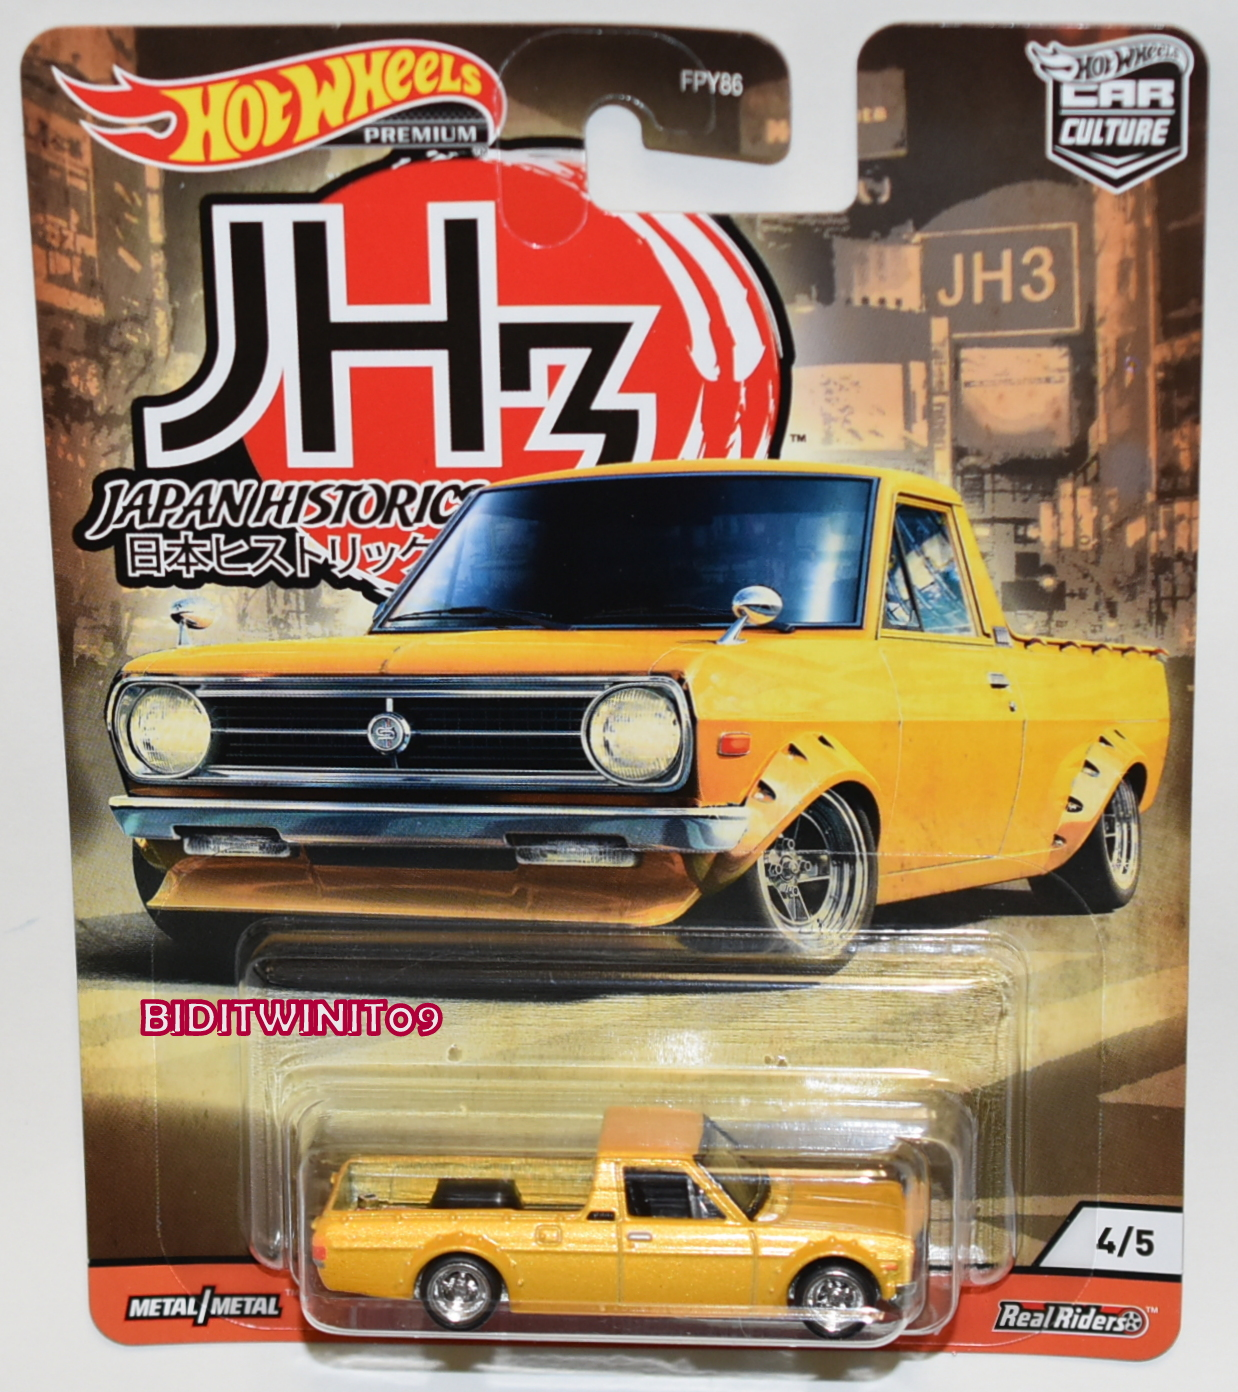 HOT WHEELS 2020 CAR CULTURE JAPAN HISTORICS 3 '75 DATSUN SUNNY TRUCK (B120)